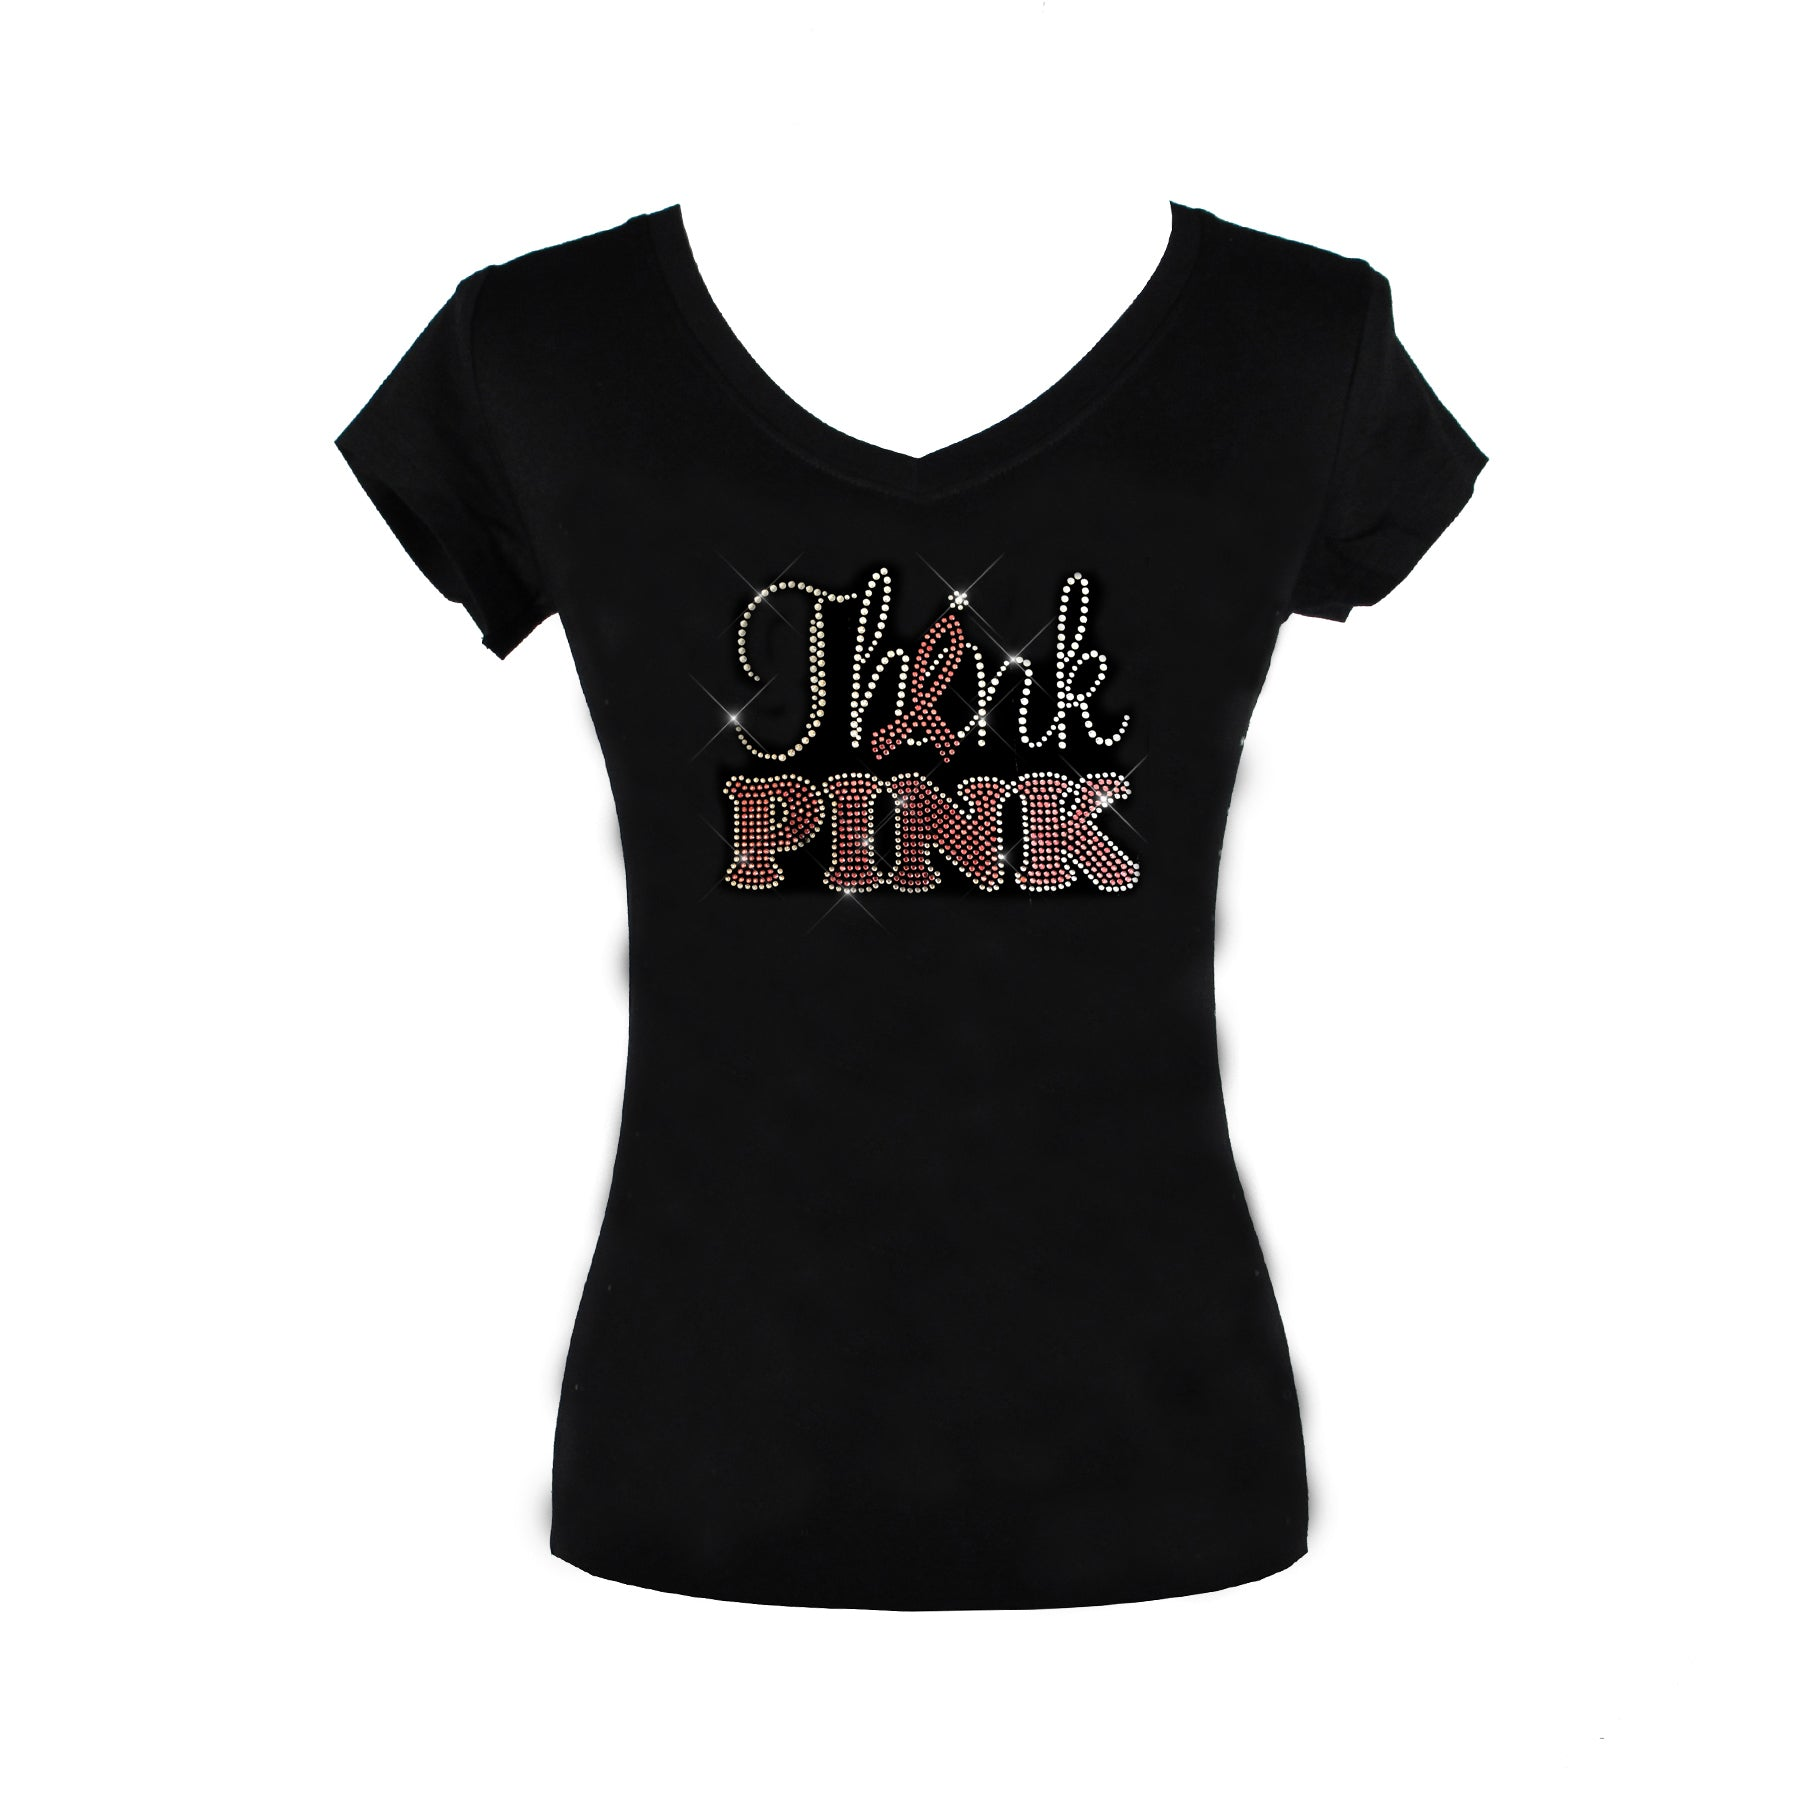 Think Pink Rhinestone Breast Cancer Awareness Month T-shirt